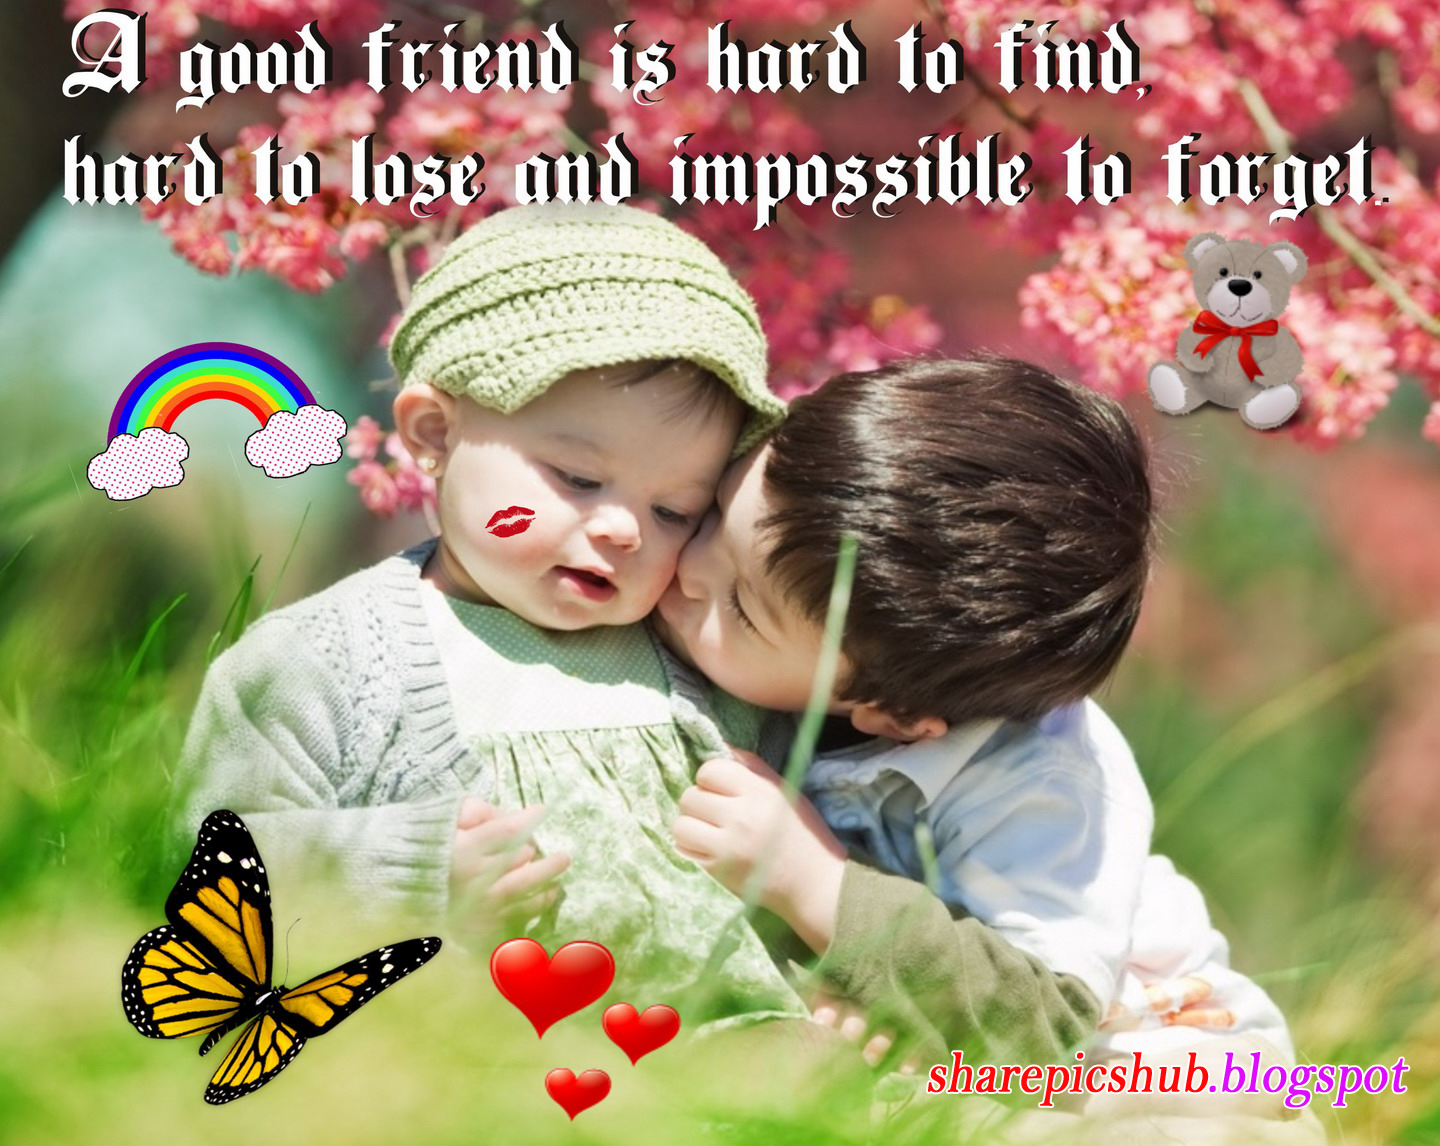 Beautiful Friendship Quote Wallpaper For Facebook | A Good ...